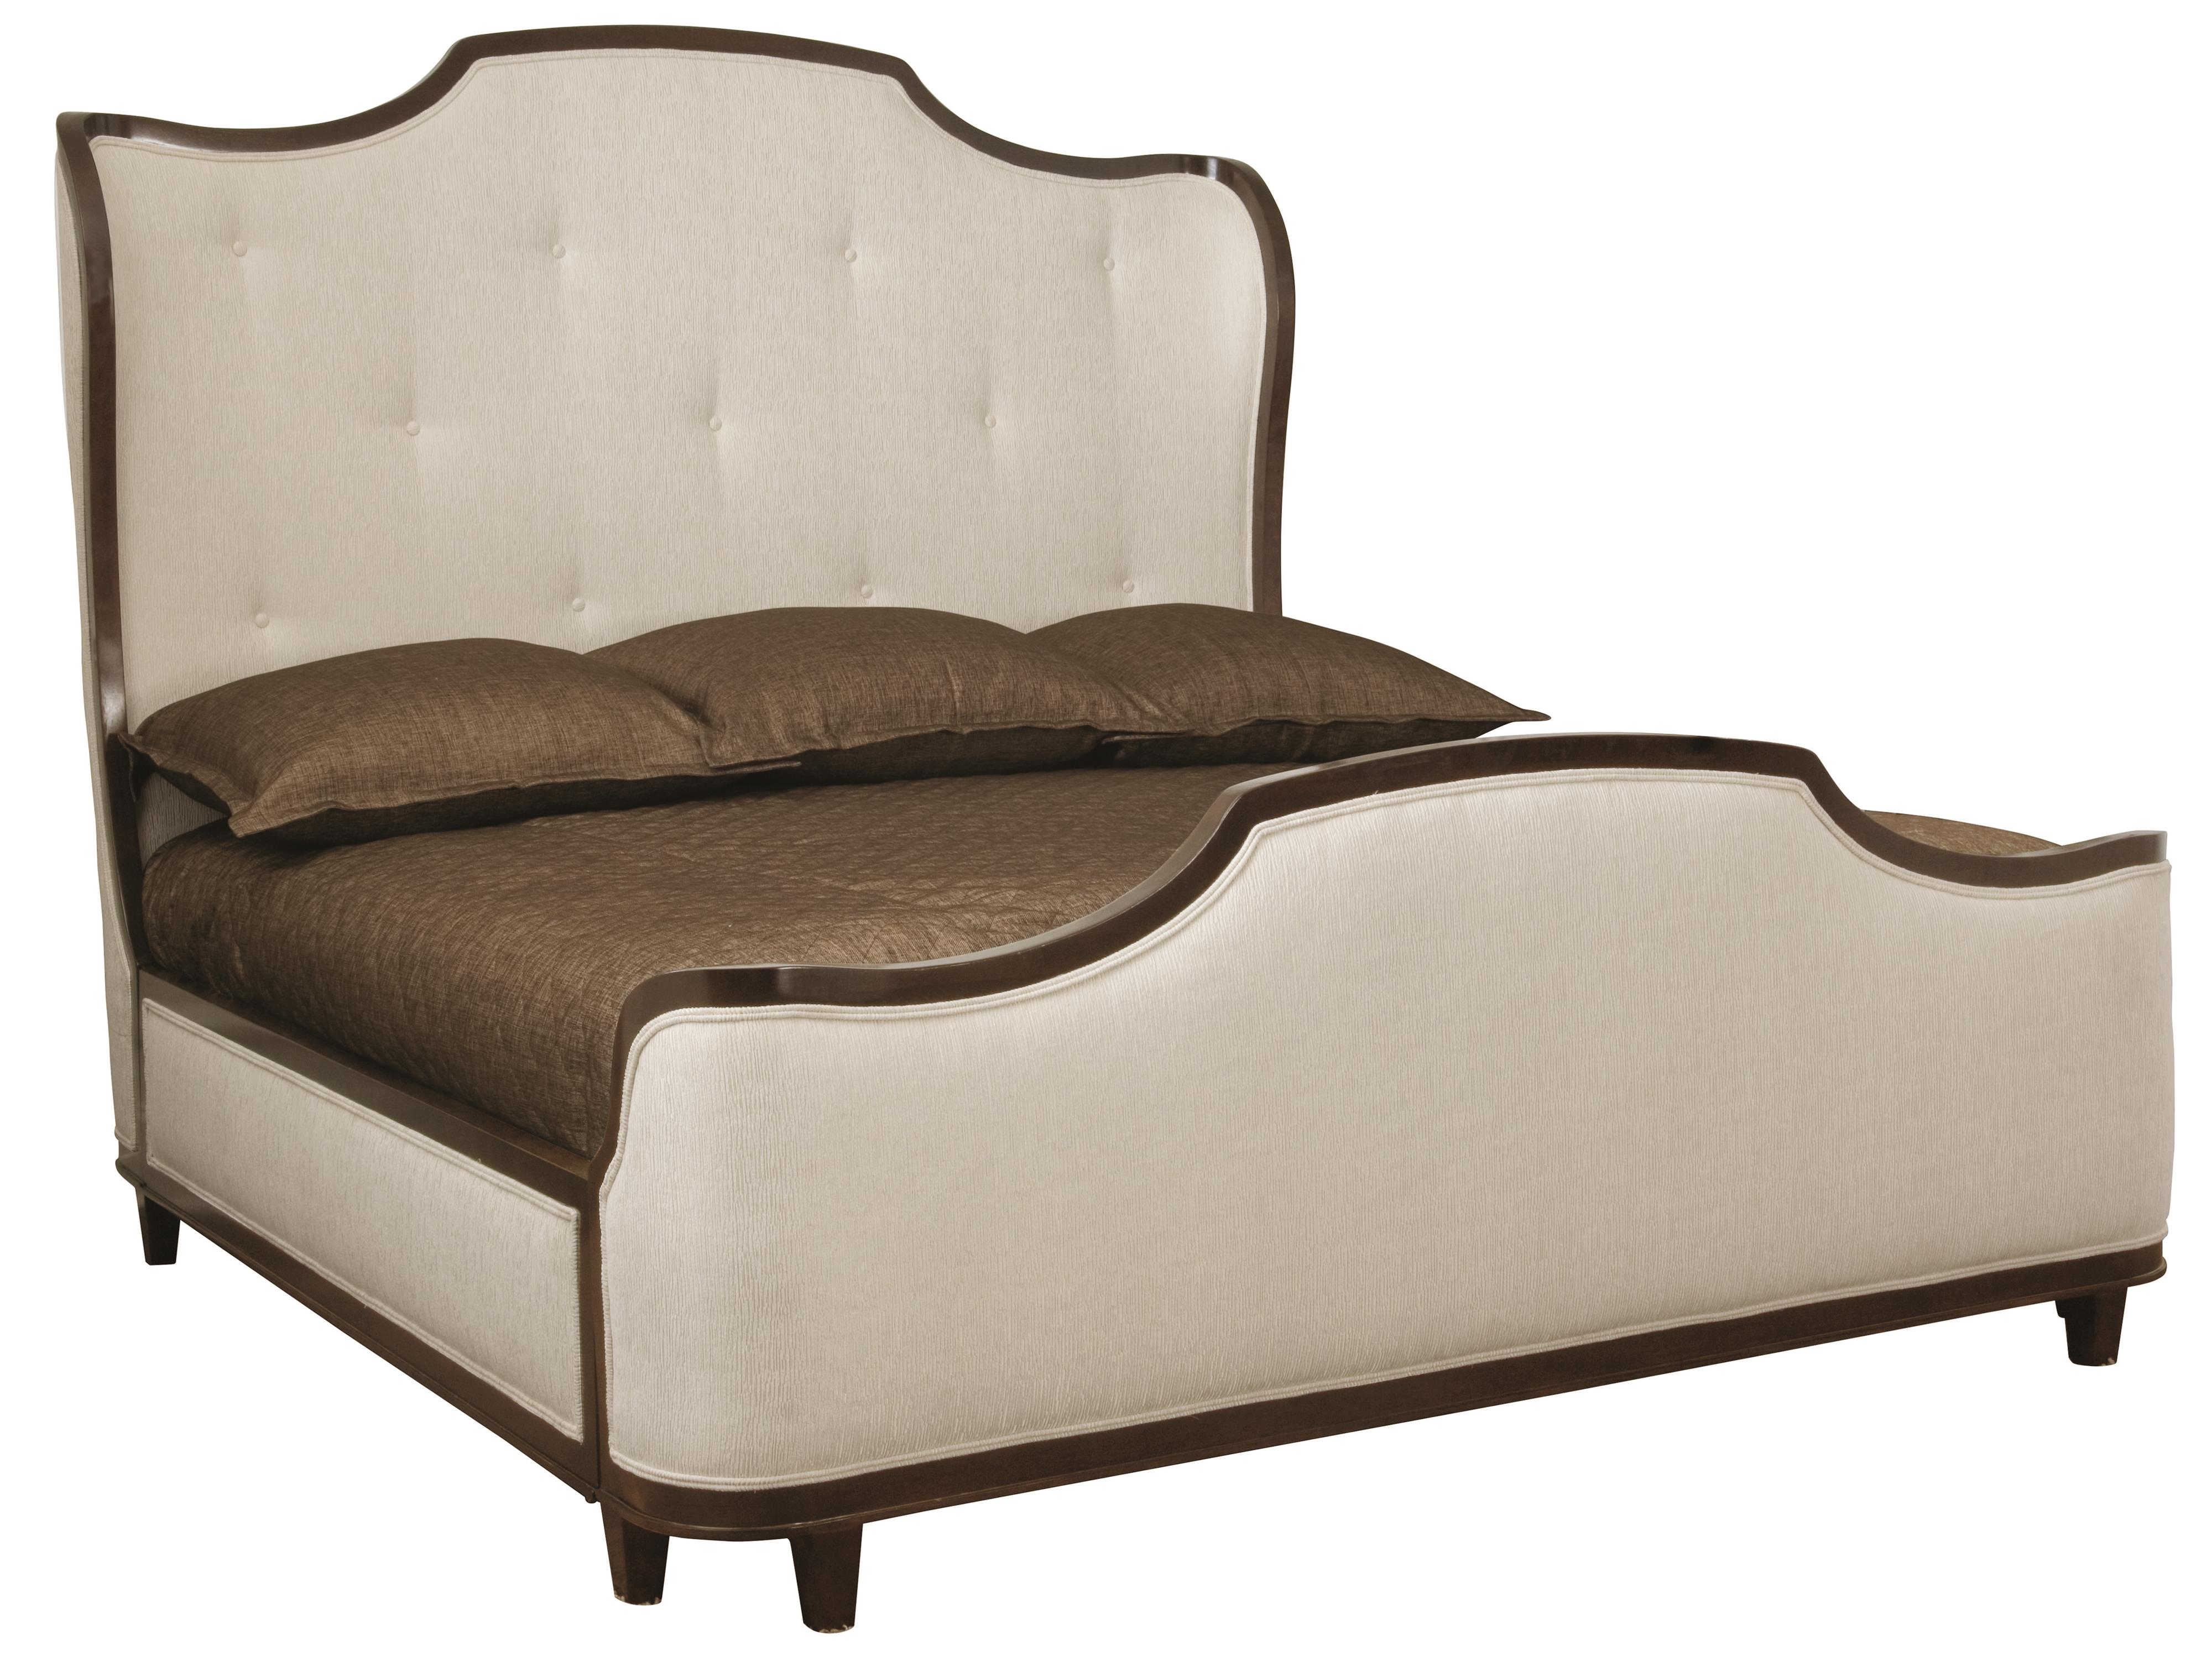 Sleigh Bed Headboard Miramont King Upholstered Sleigh Bed With Button Tufted Headboard By Bernhardt At Sprintz Furniture